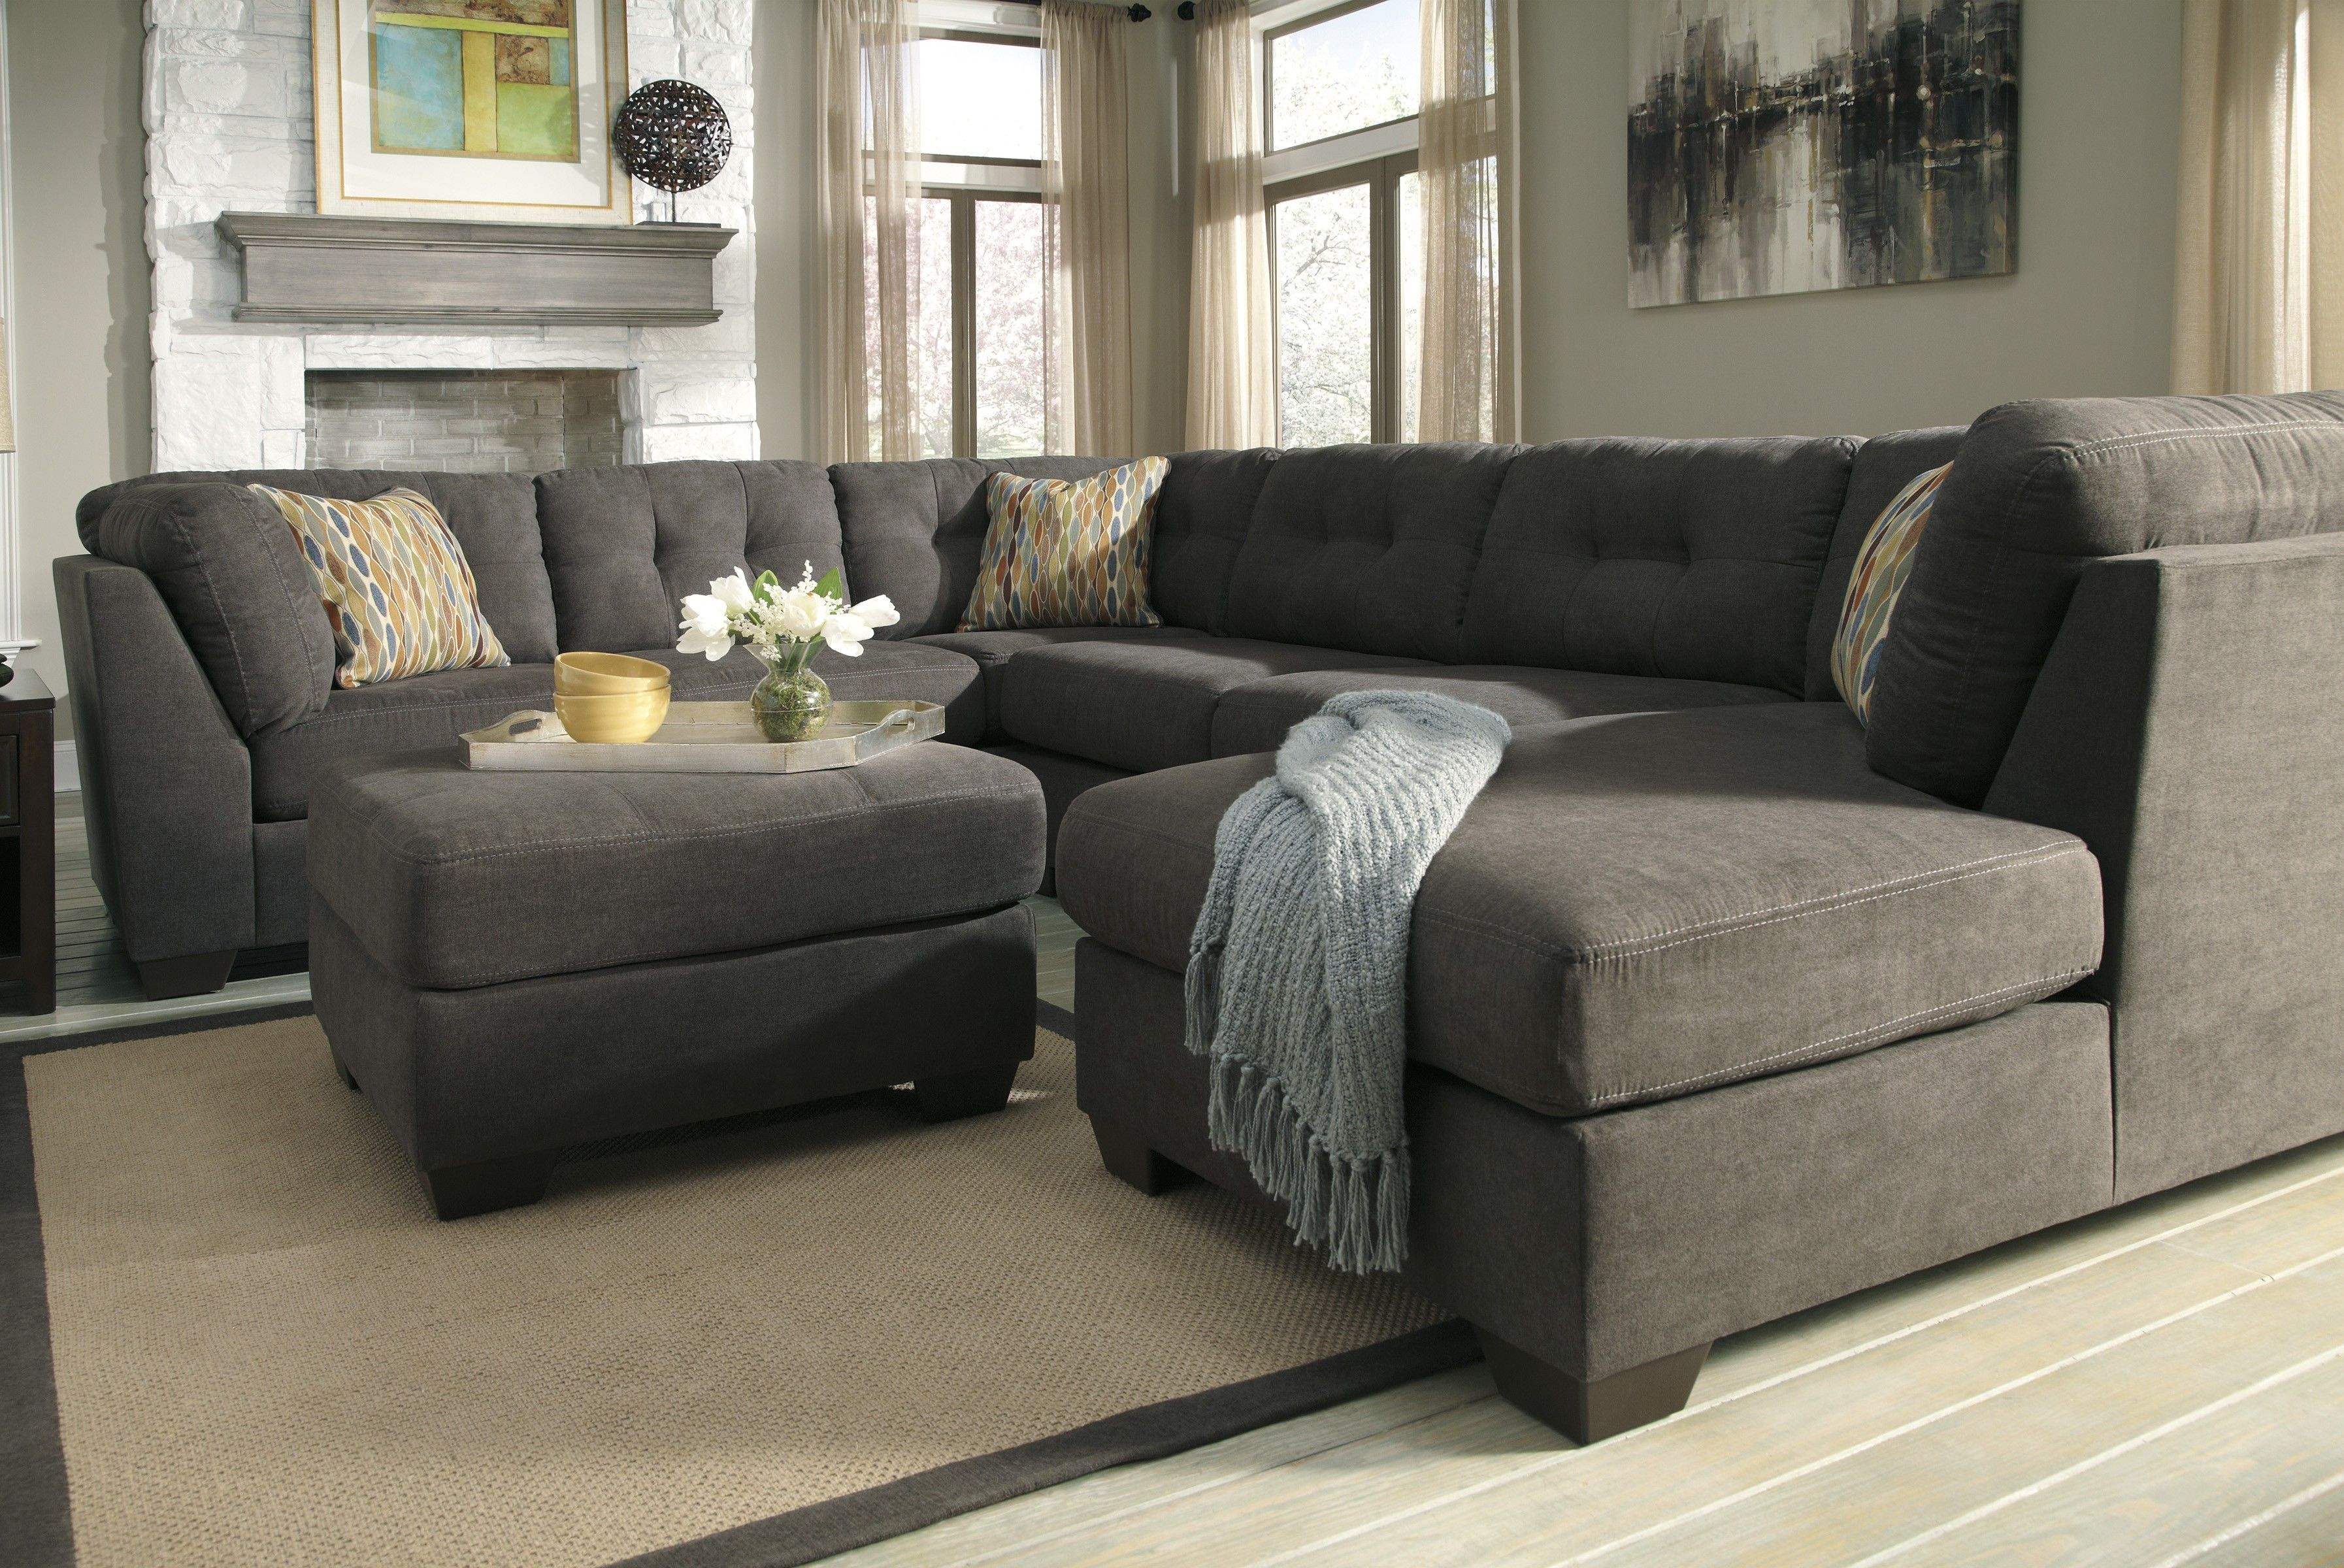 10+ Best Pasadena Gray Living Room Sectional